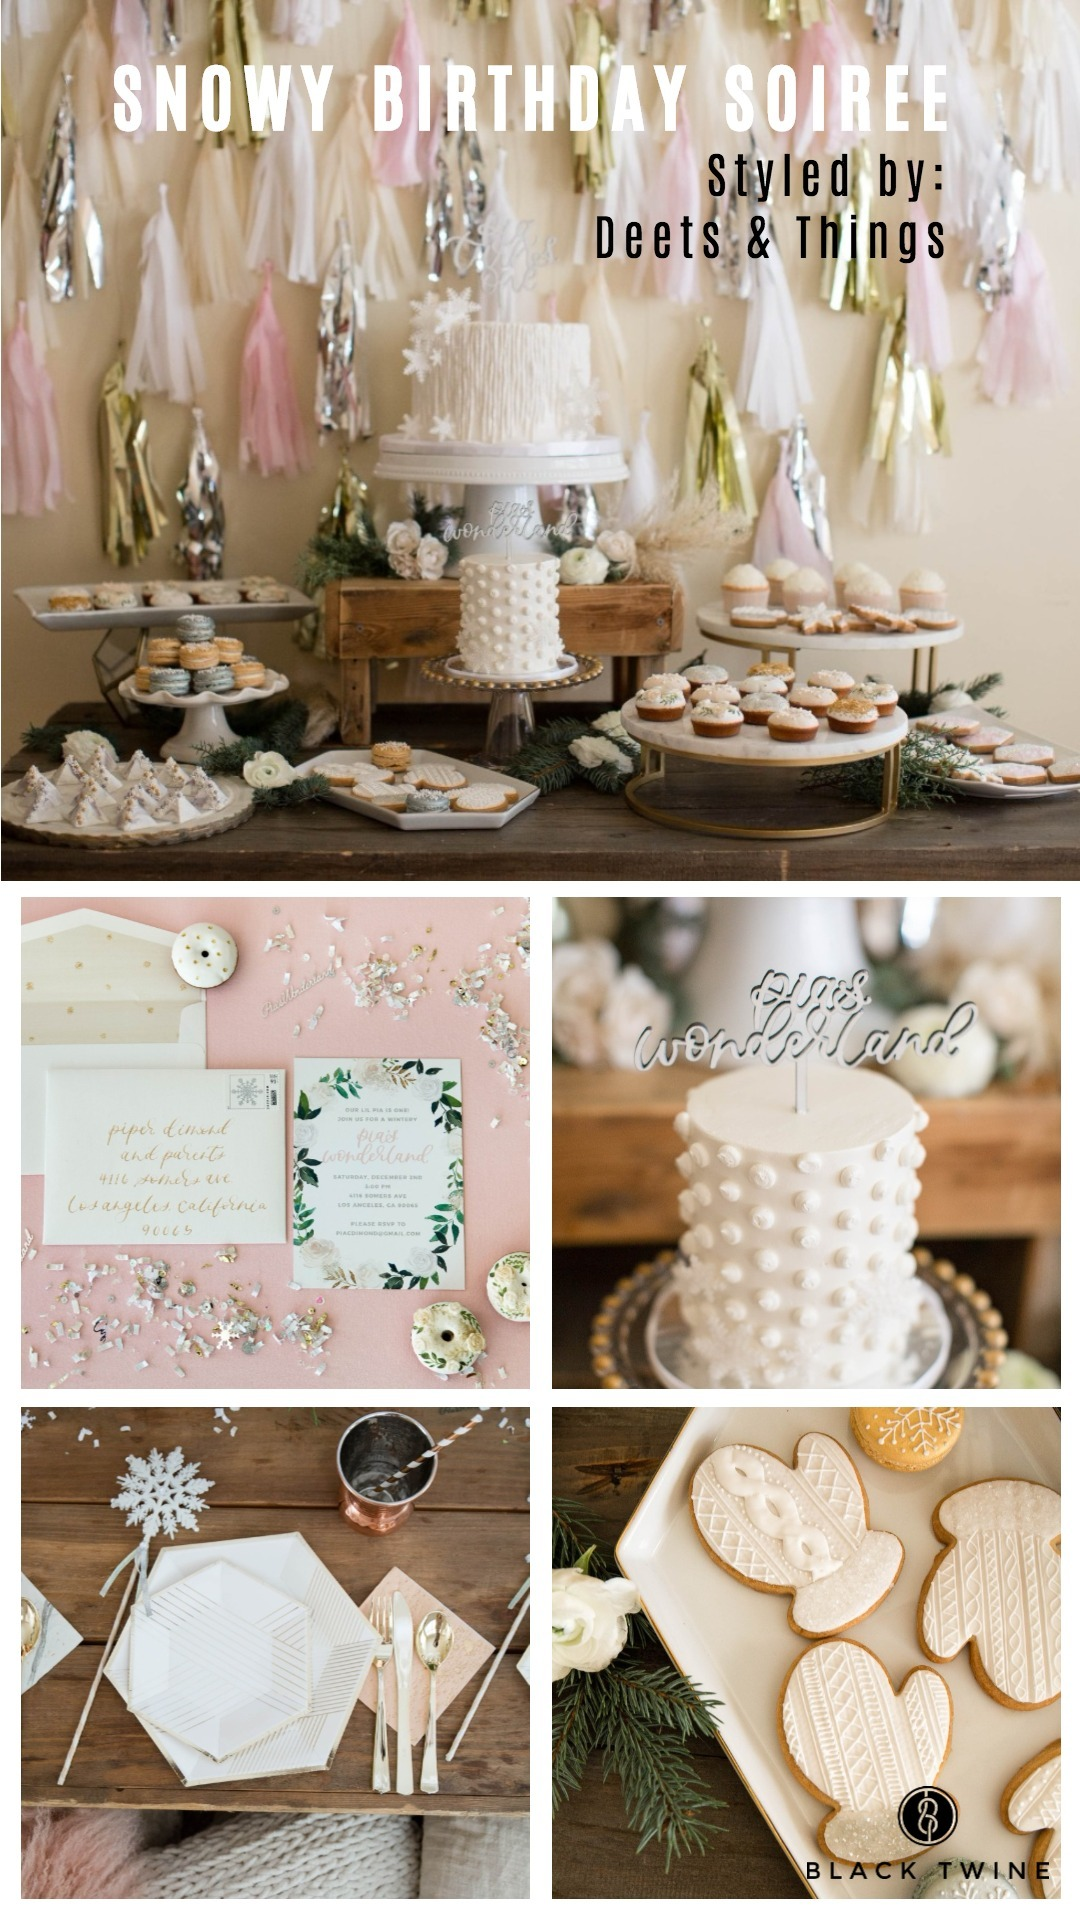 Snowy Birthday Soiree Styled by Deets & Things | Black Twine